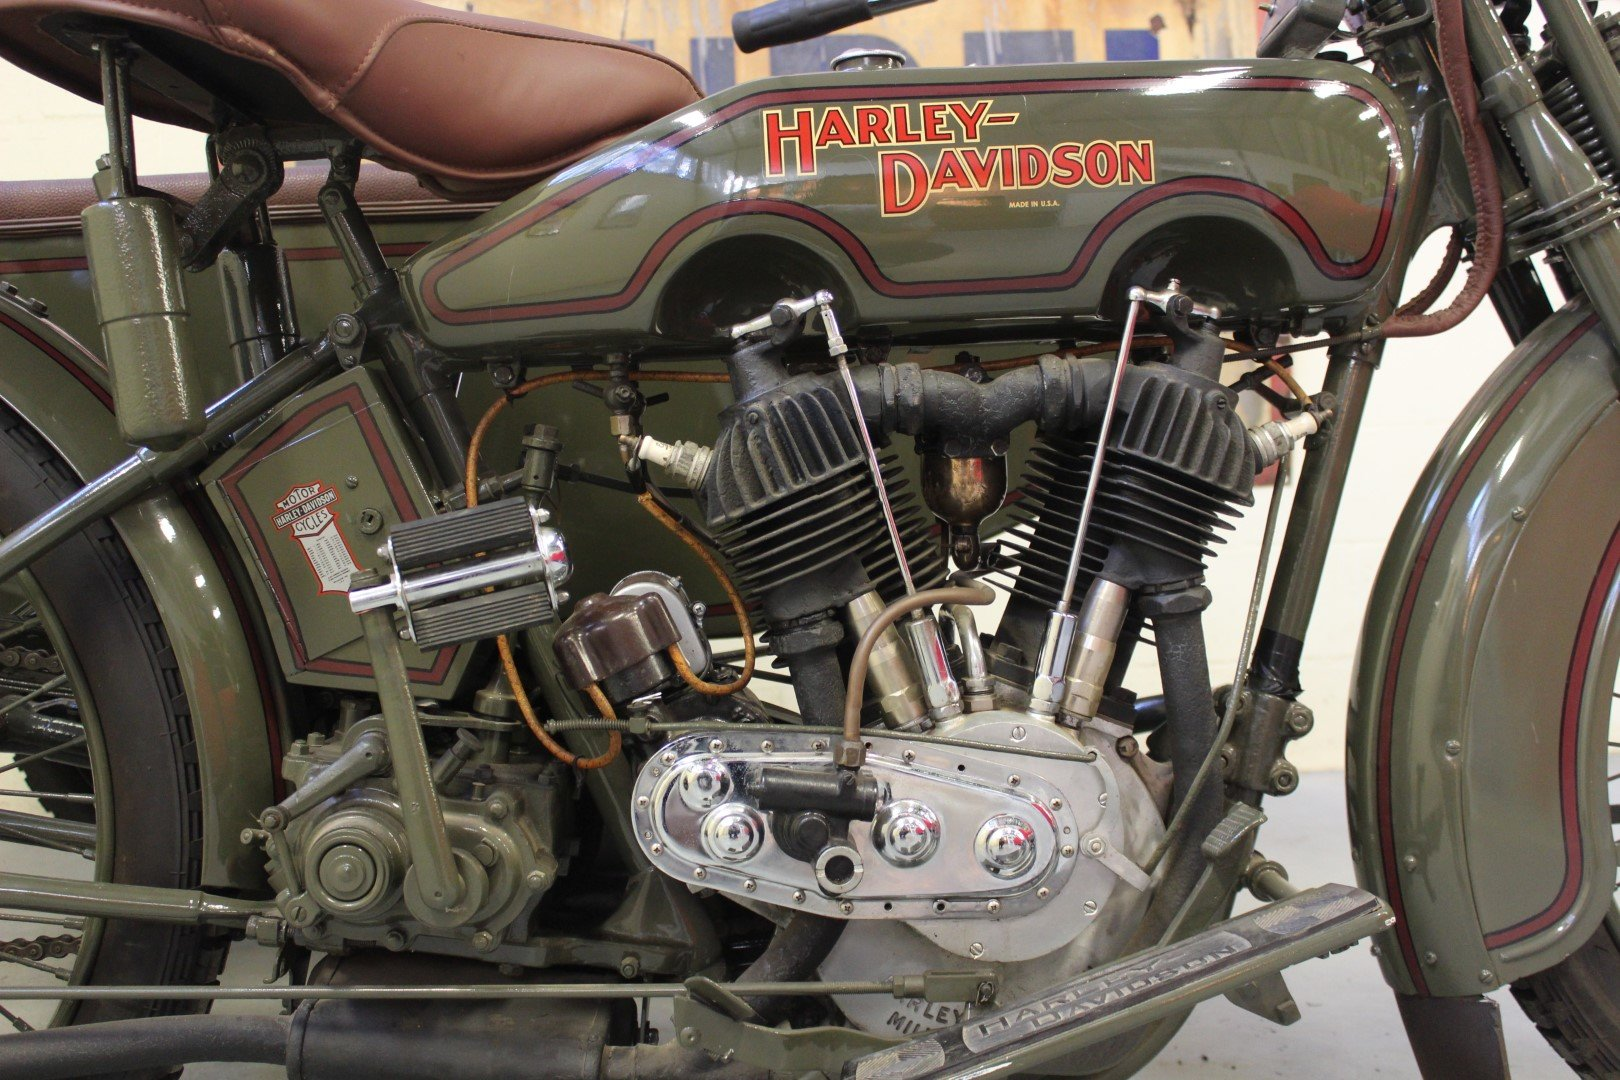 1924 HARLEY-DAVIDSON 1,000CC MODEL JE WITH SIDECAR For Sale by Auction (picture 6 of 6)